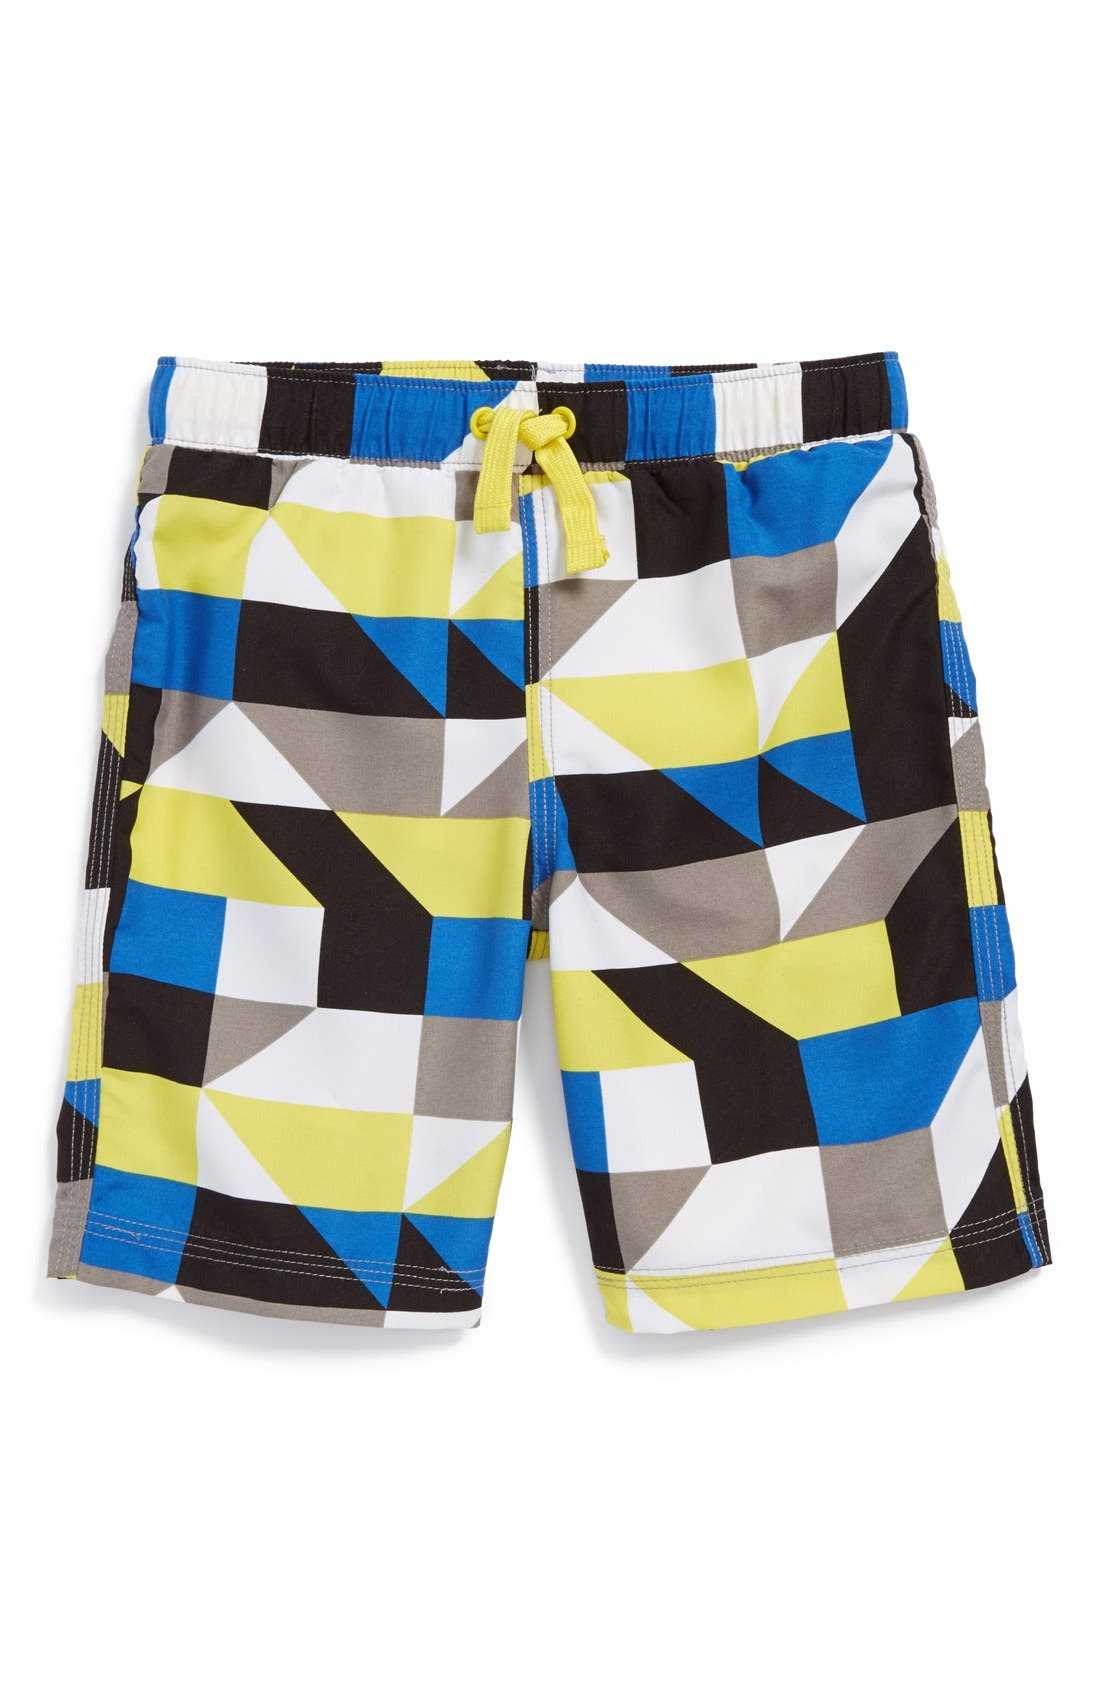 Alternate Image 1 Selected - Tucker + Tate 'Sand 'N My Trunks' Swim Trunks (Toddler Boys)